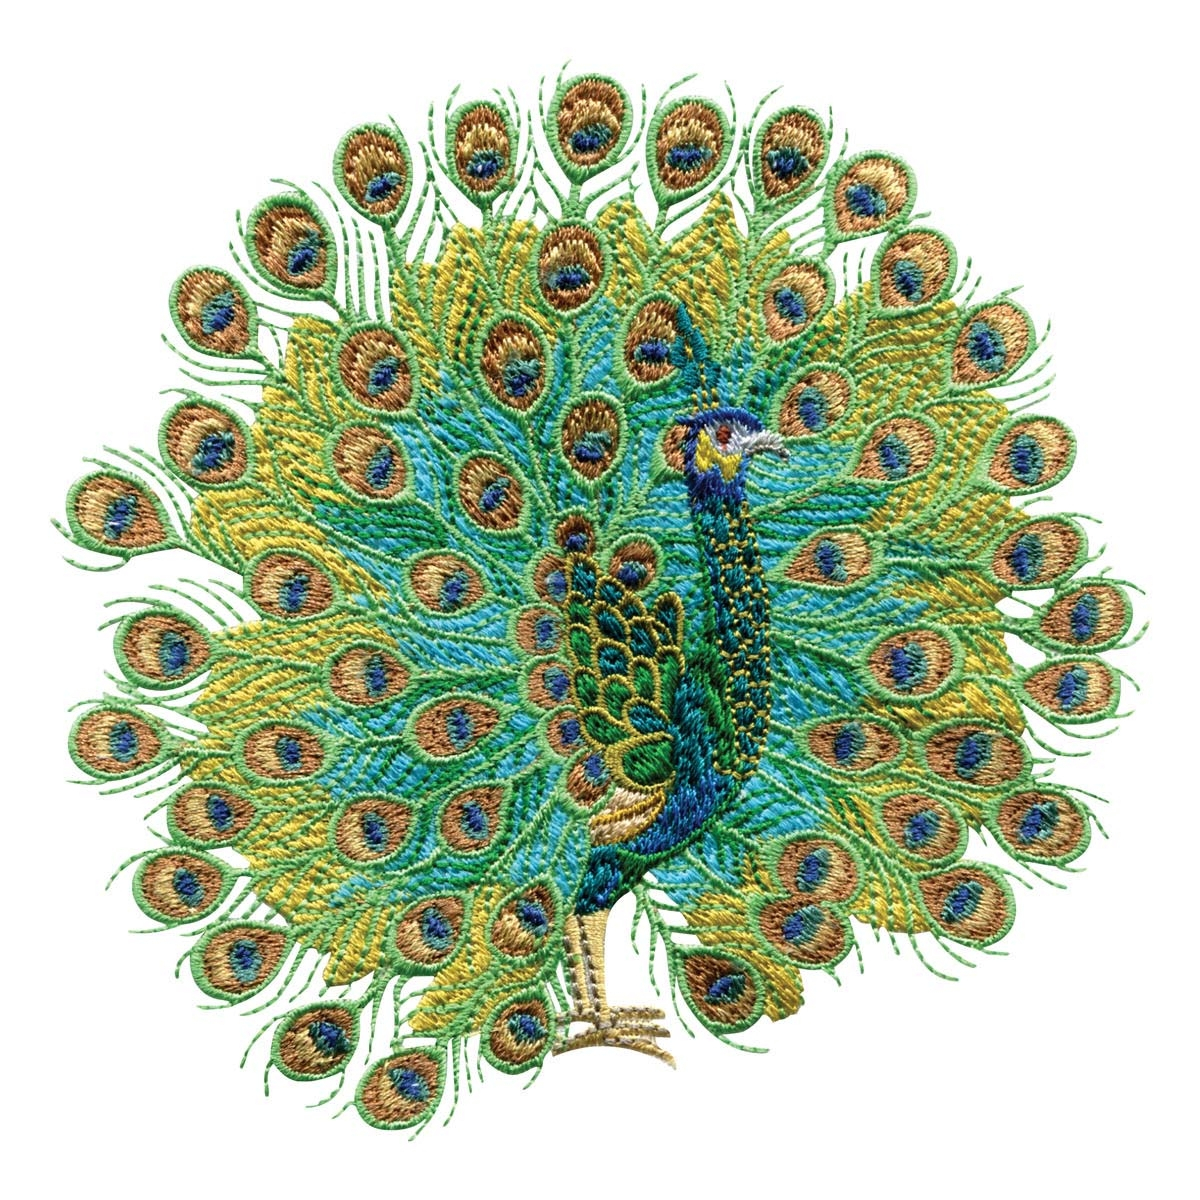 Peacock Embroidery Patterns Peacock Embroidery Design